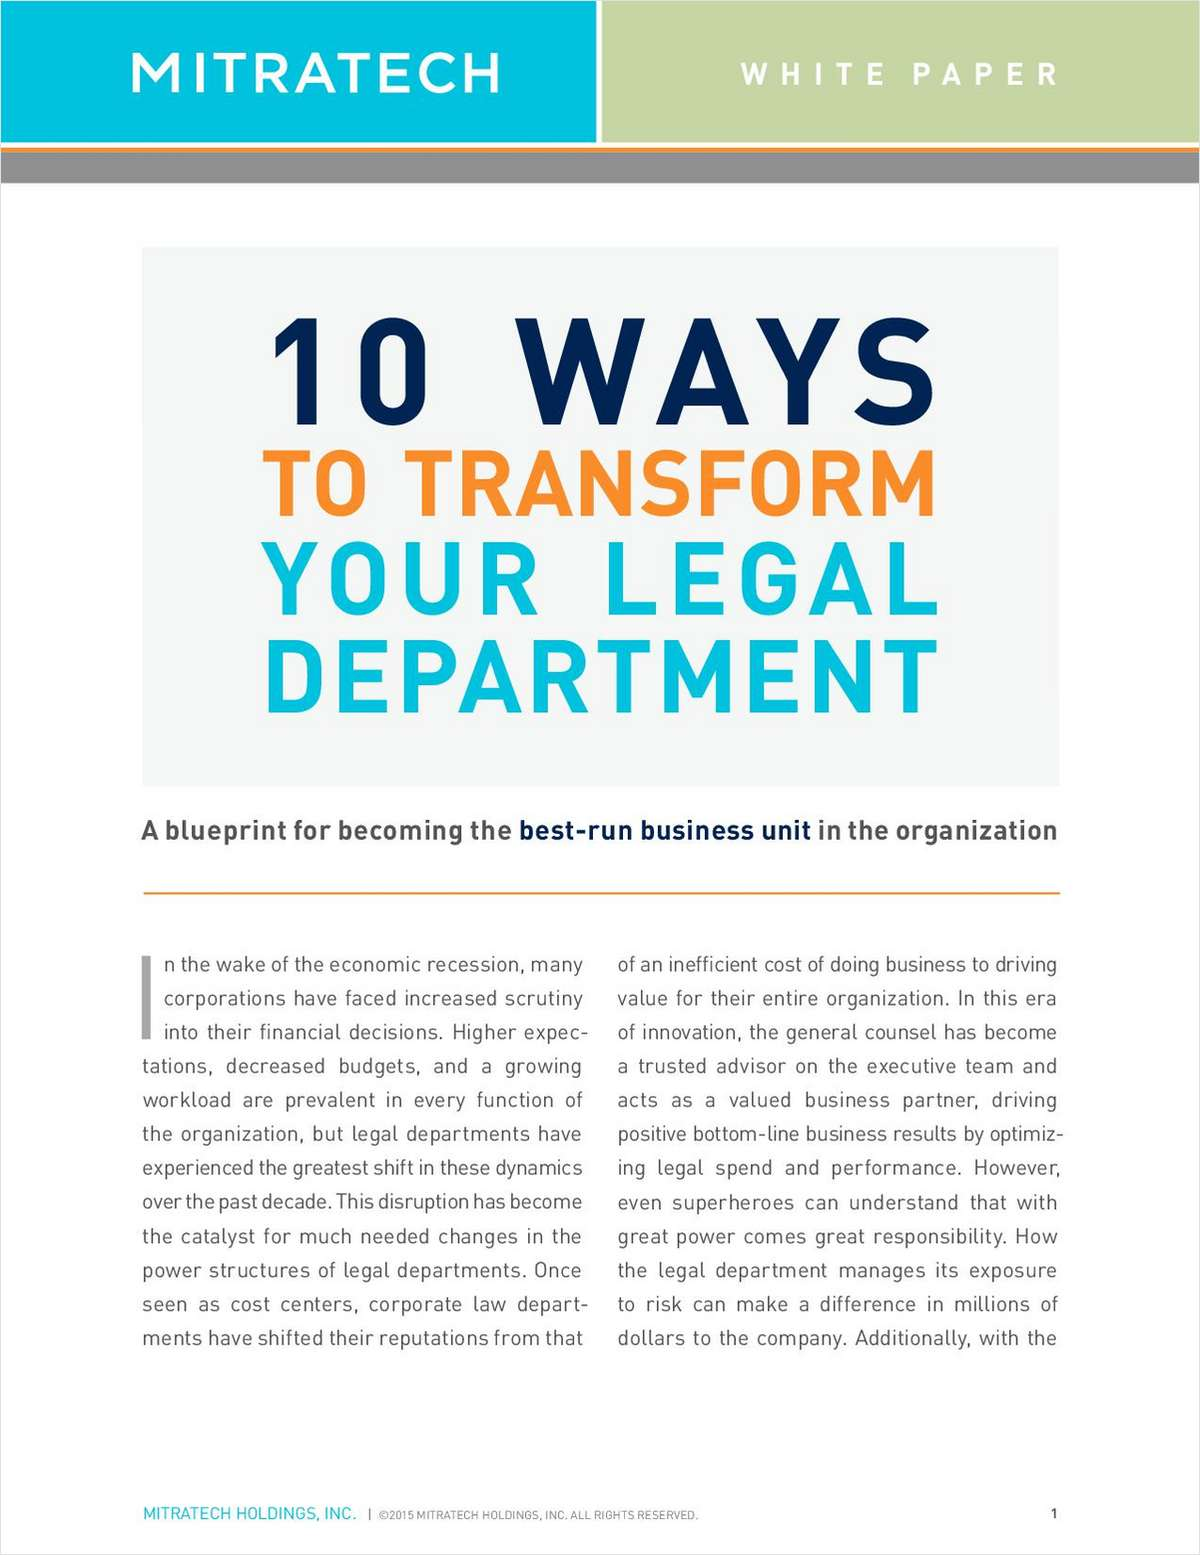 10 Ways to Transform Your Legal Department